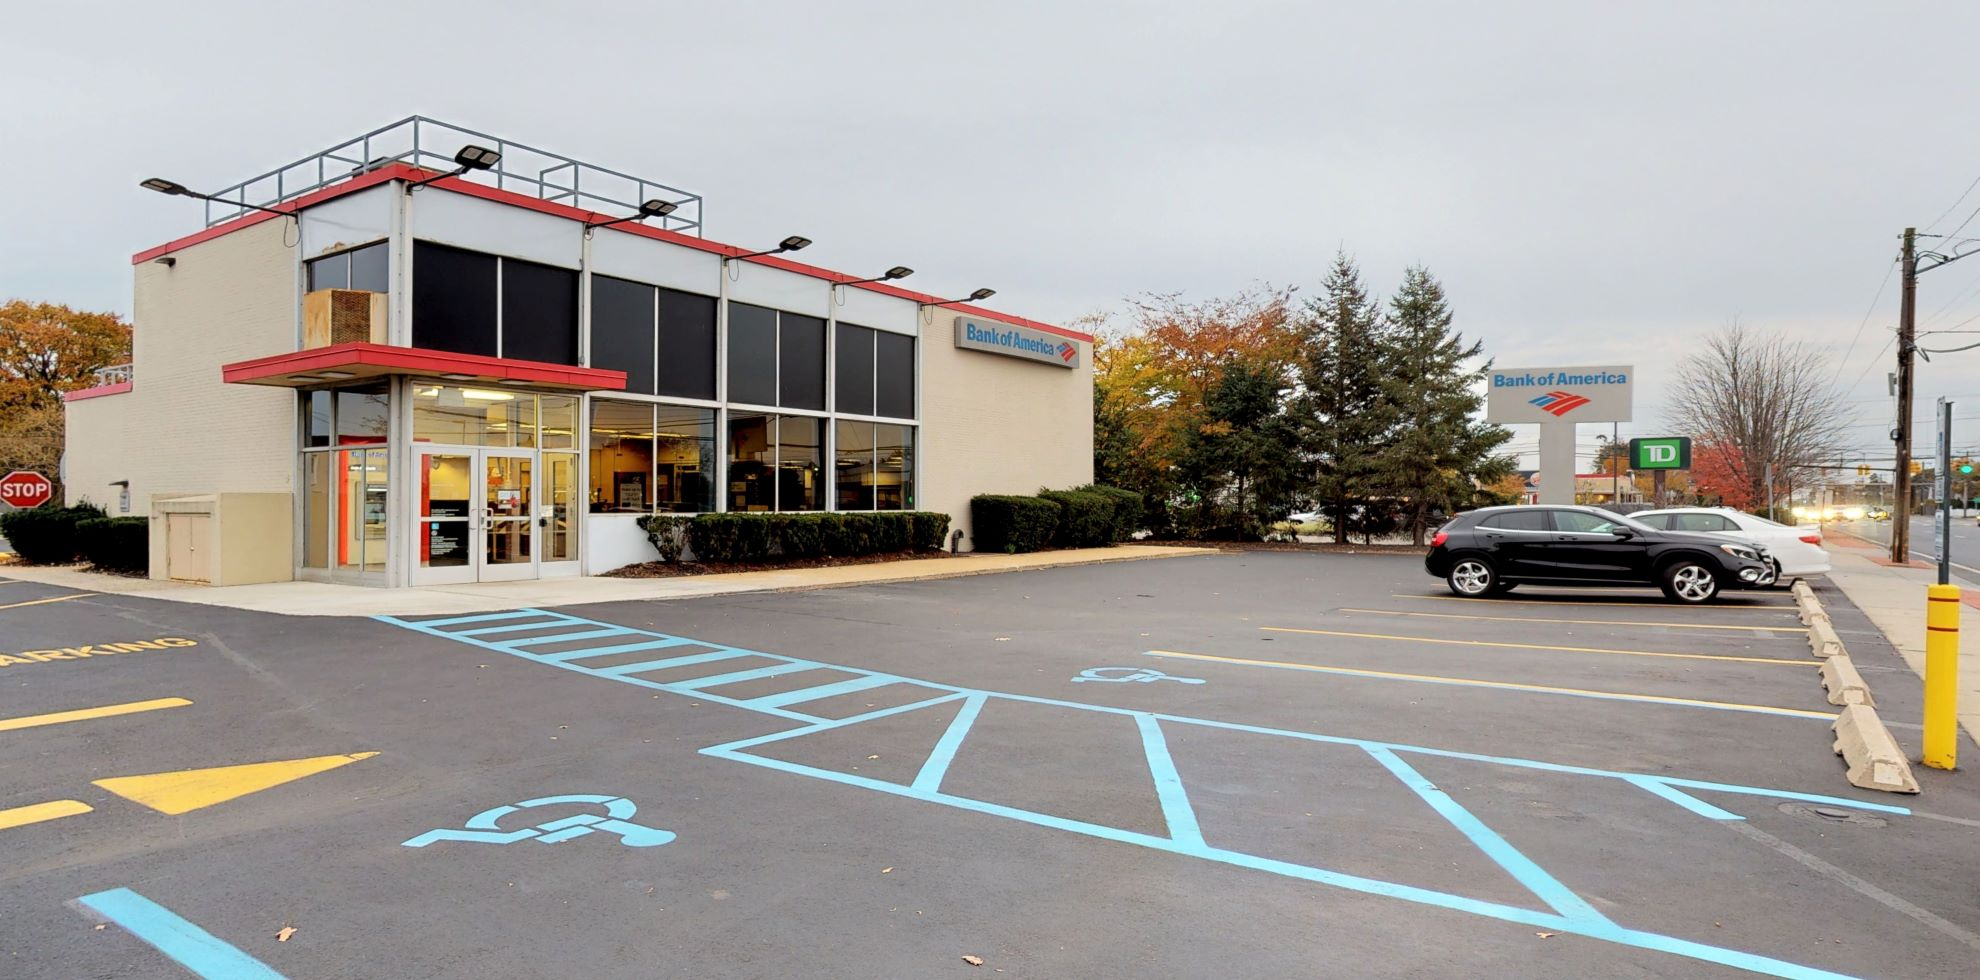 Bank of America financial center with drive-thru ATM   565 S Oyster Bay Rd, Plainview, NY 11803